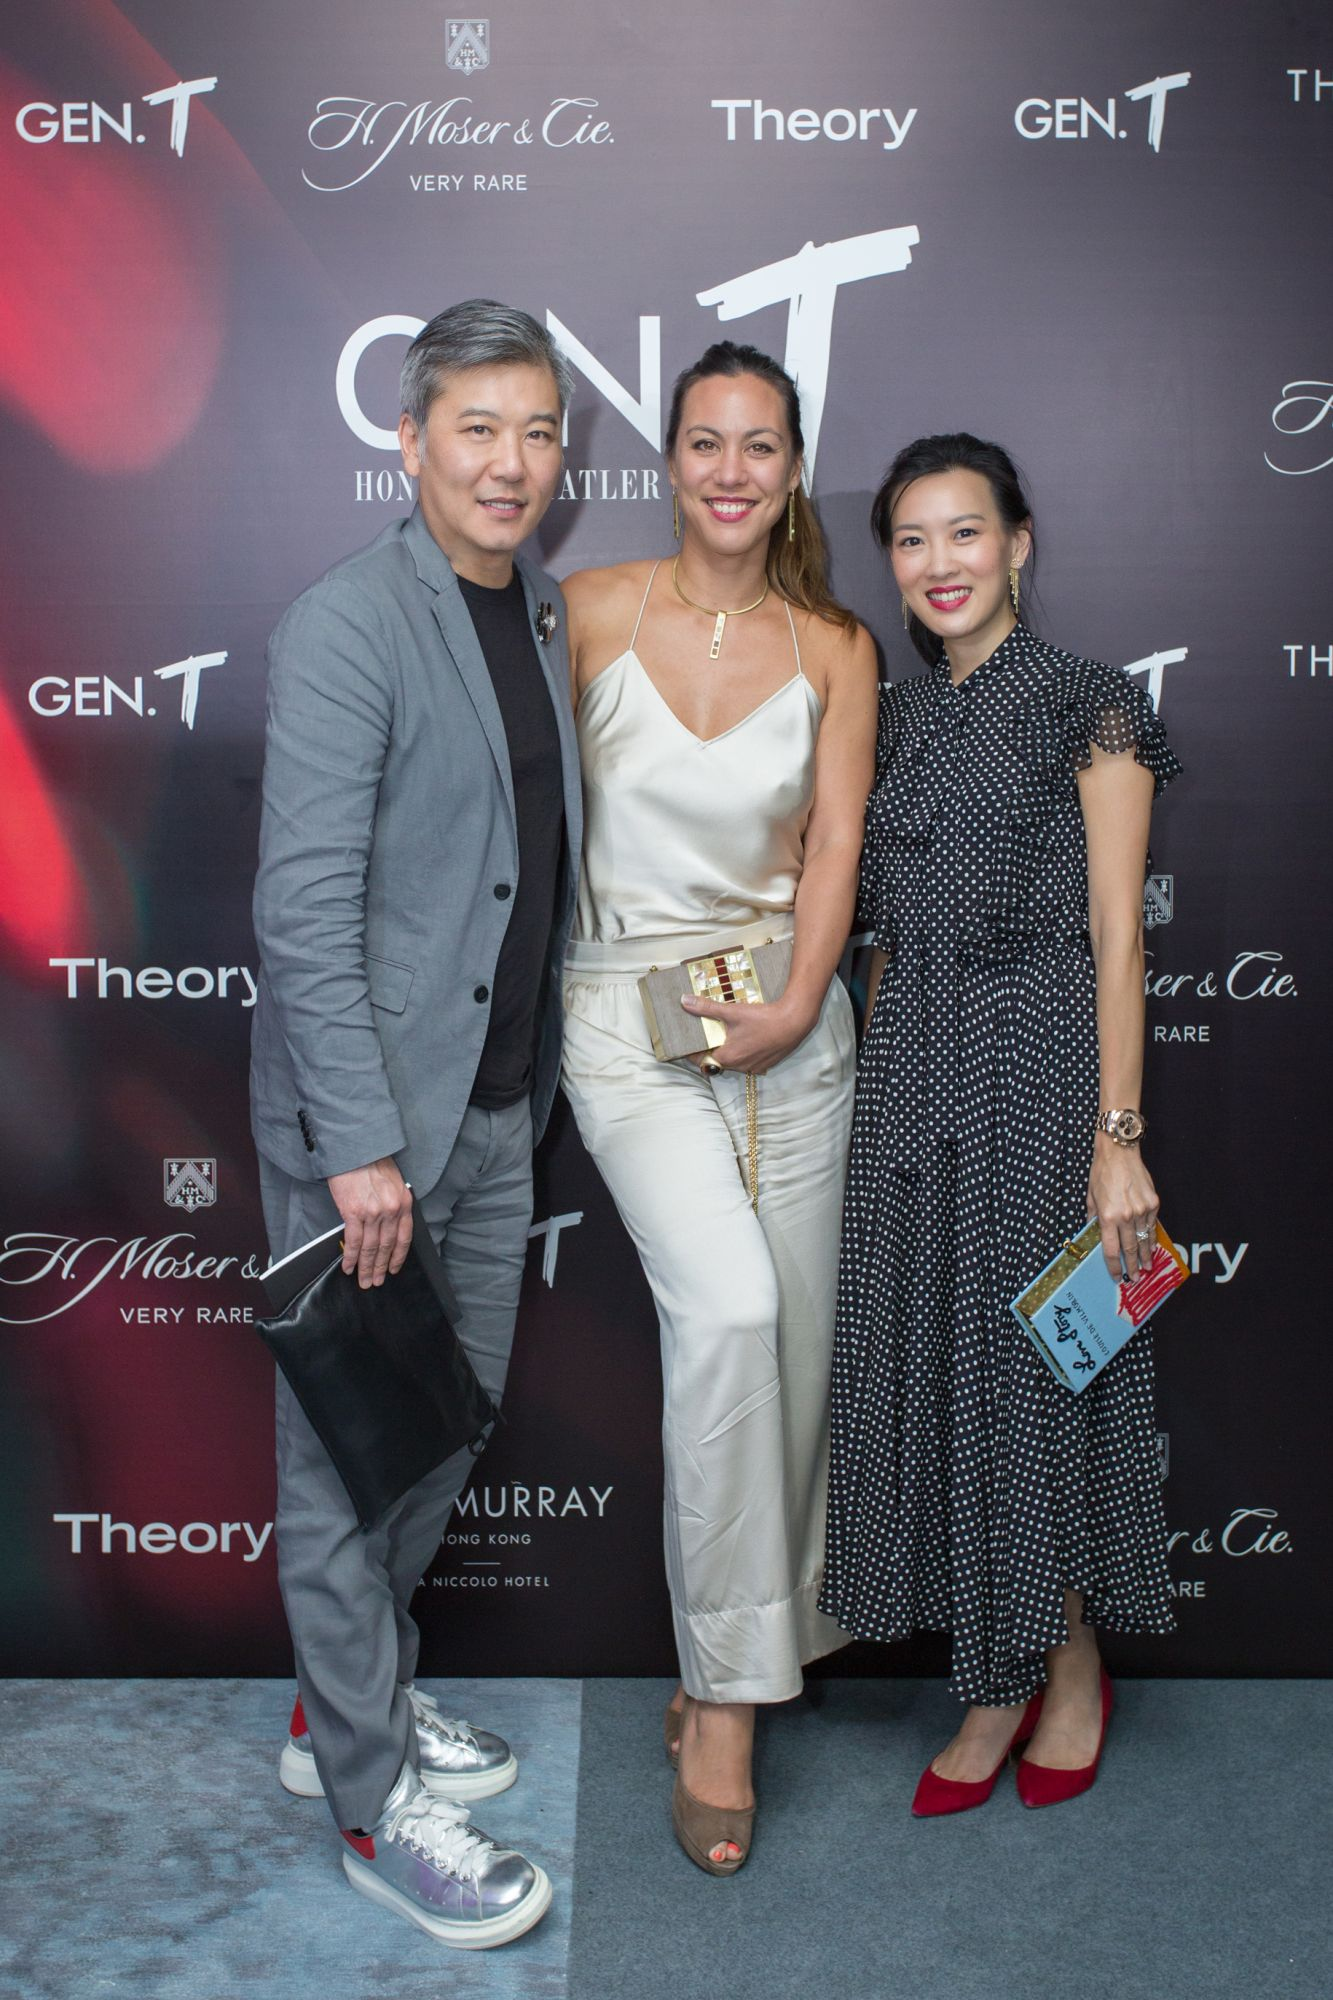 Style Spotting At The Generation T 2018 Party